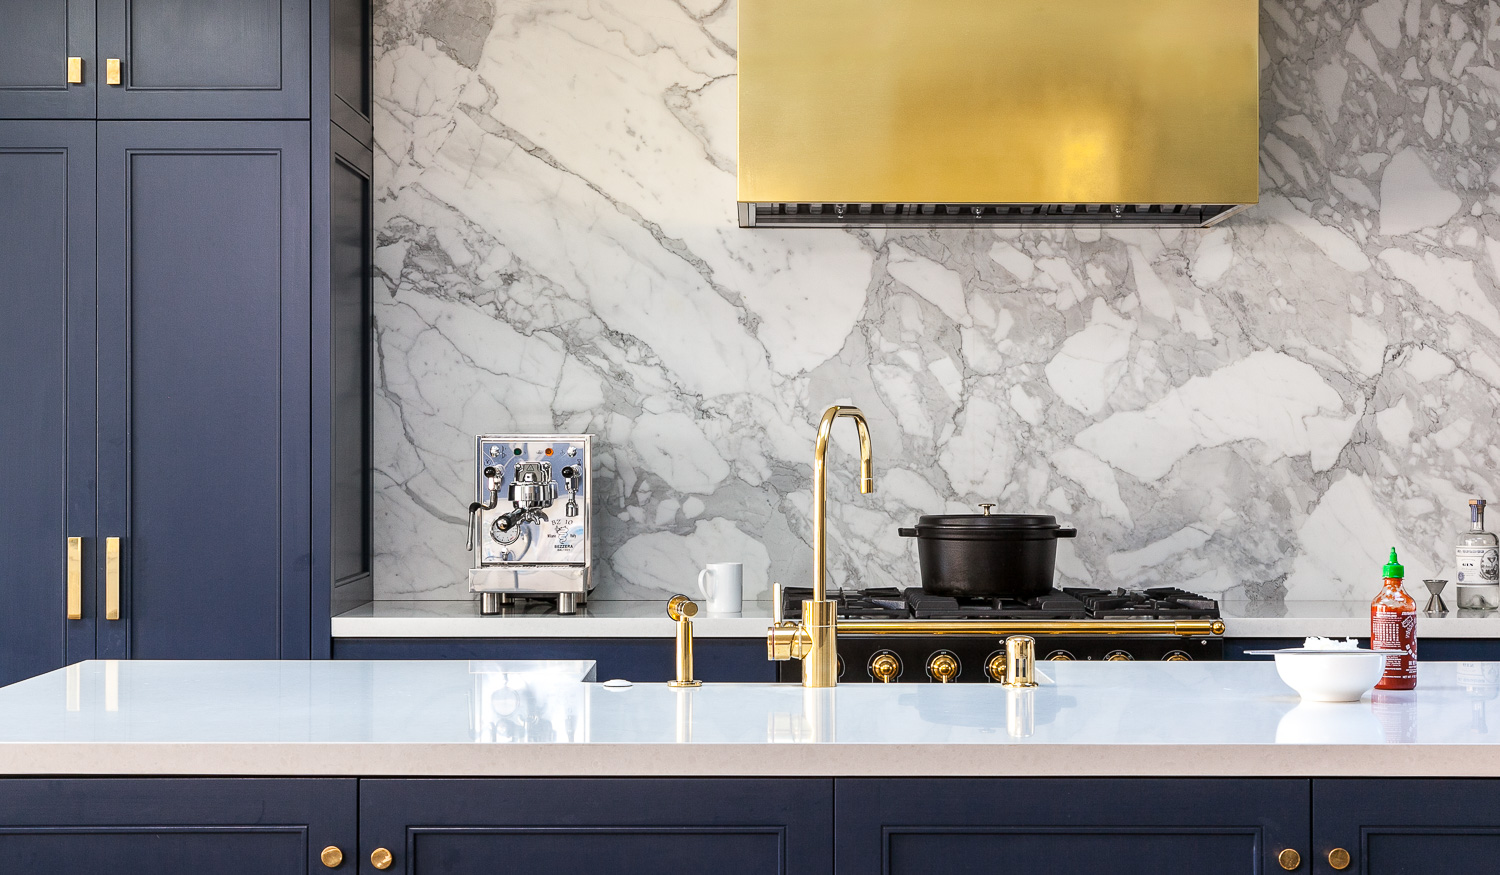 A kitchen with a custom metallic hood designed by interior designer Grant K. Gibson.